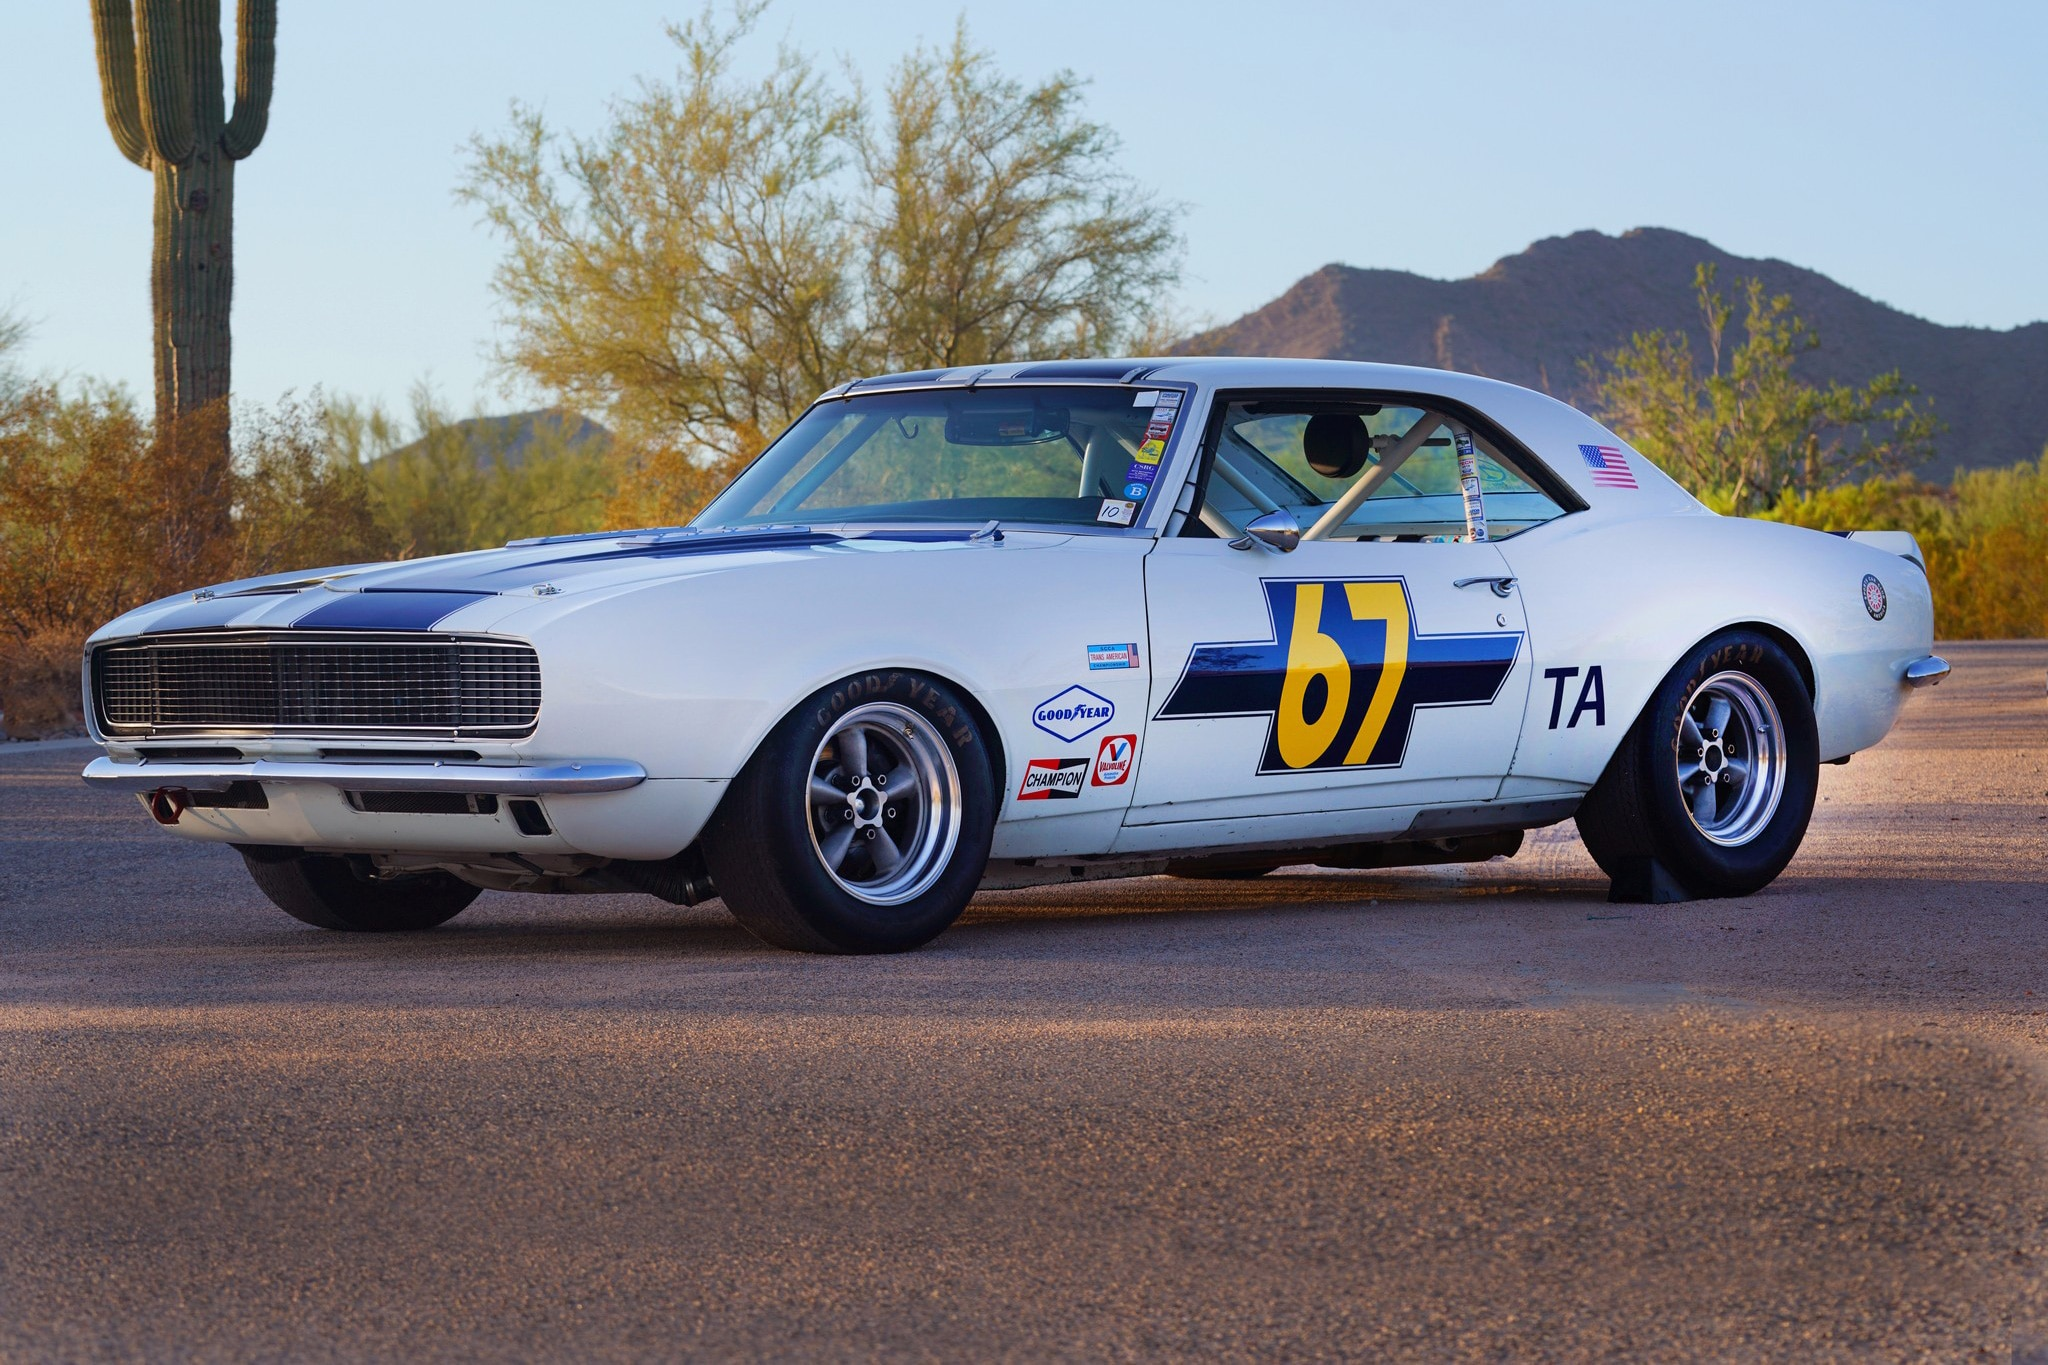 Camaro Drag Car For Sale